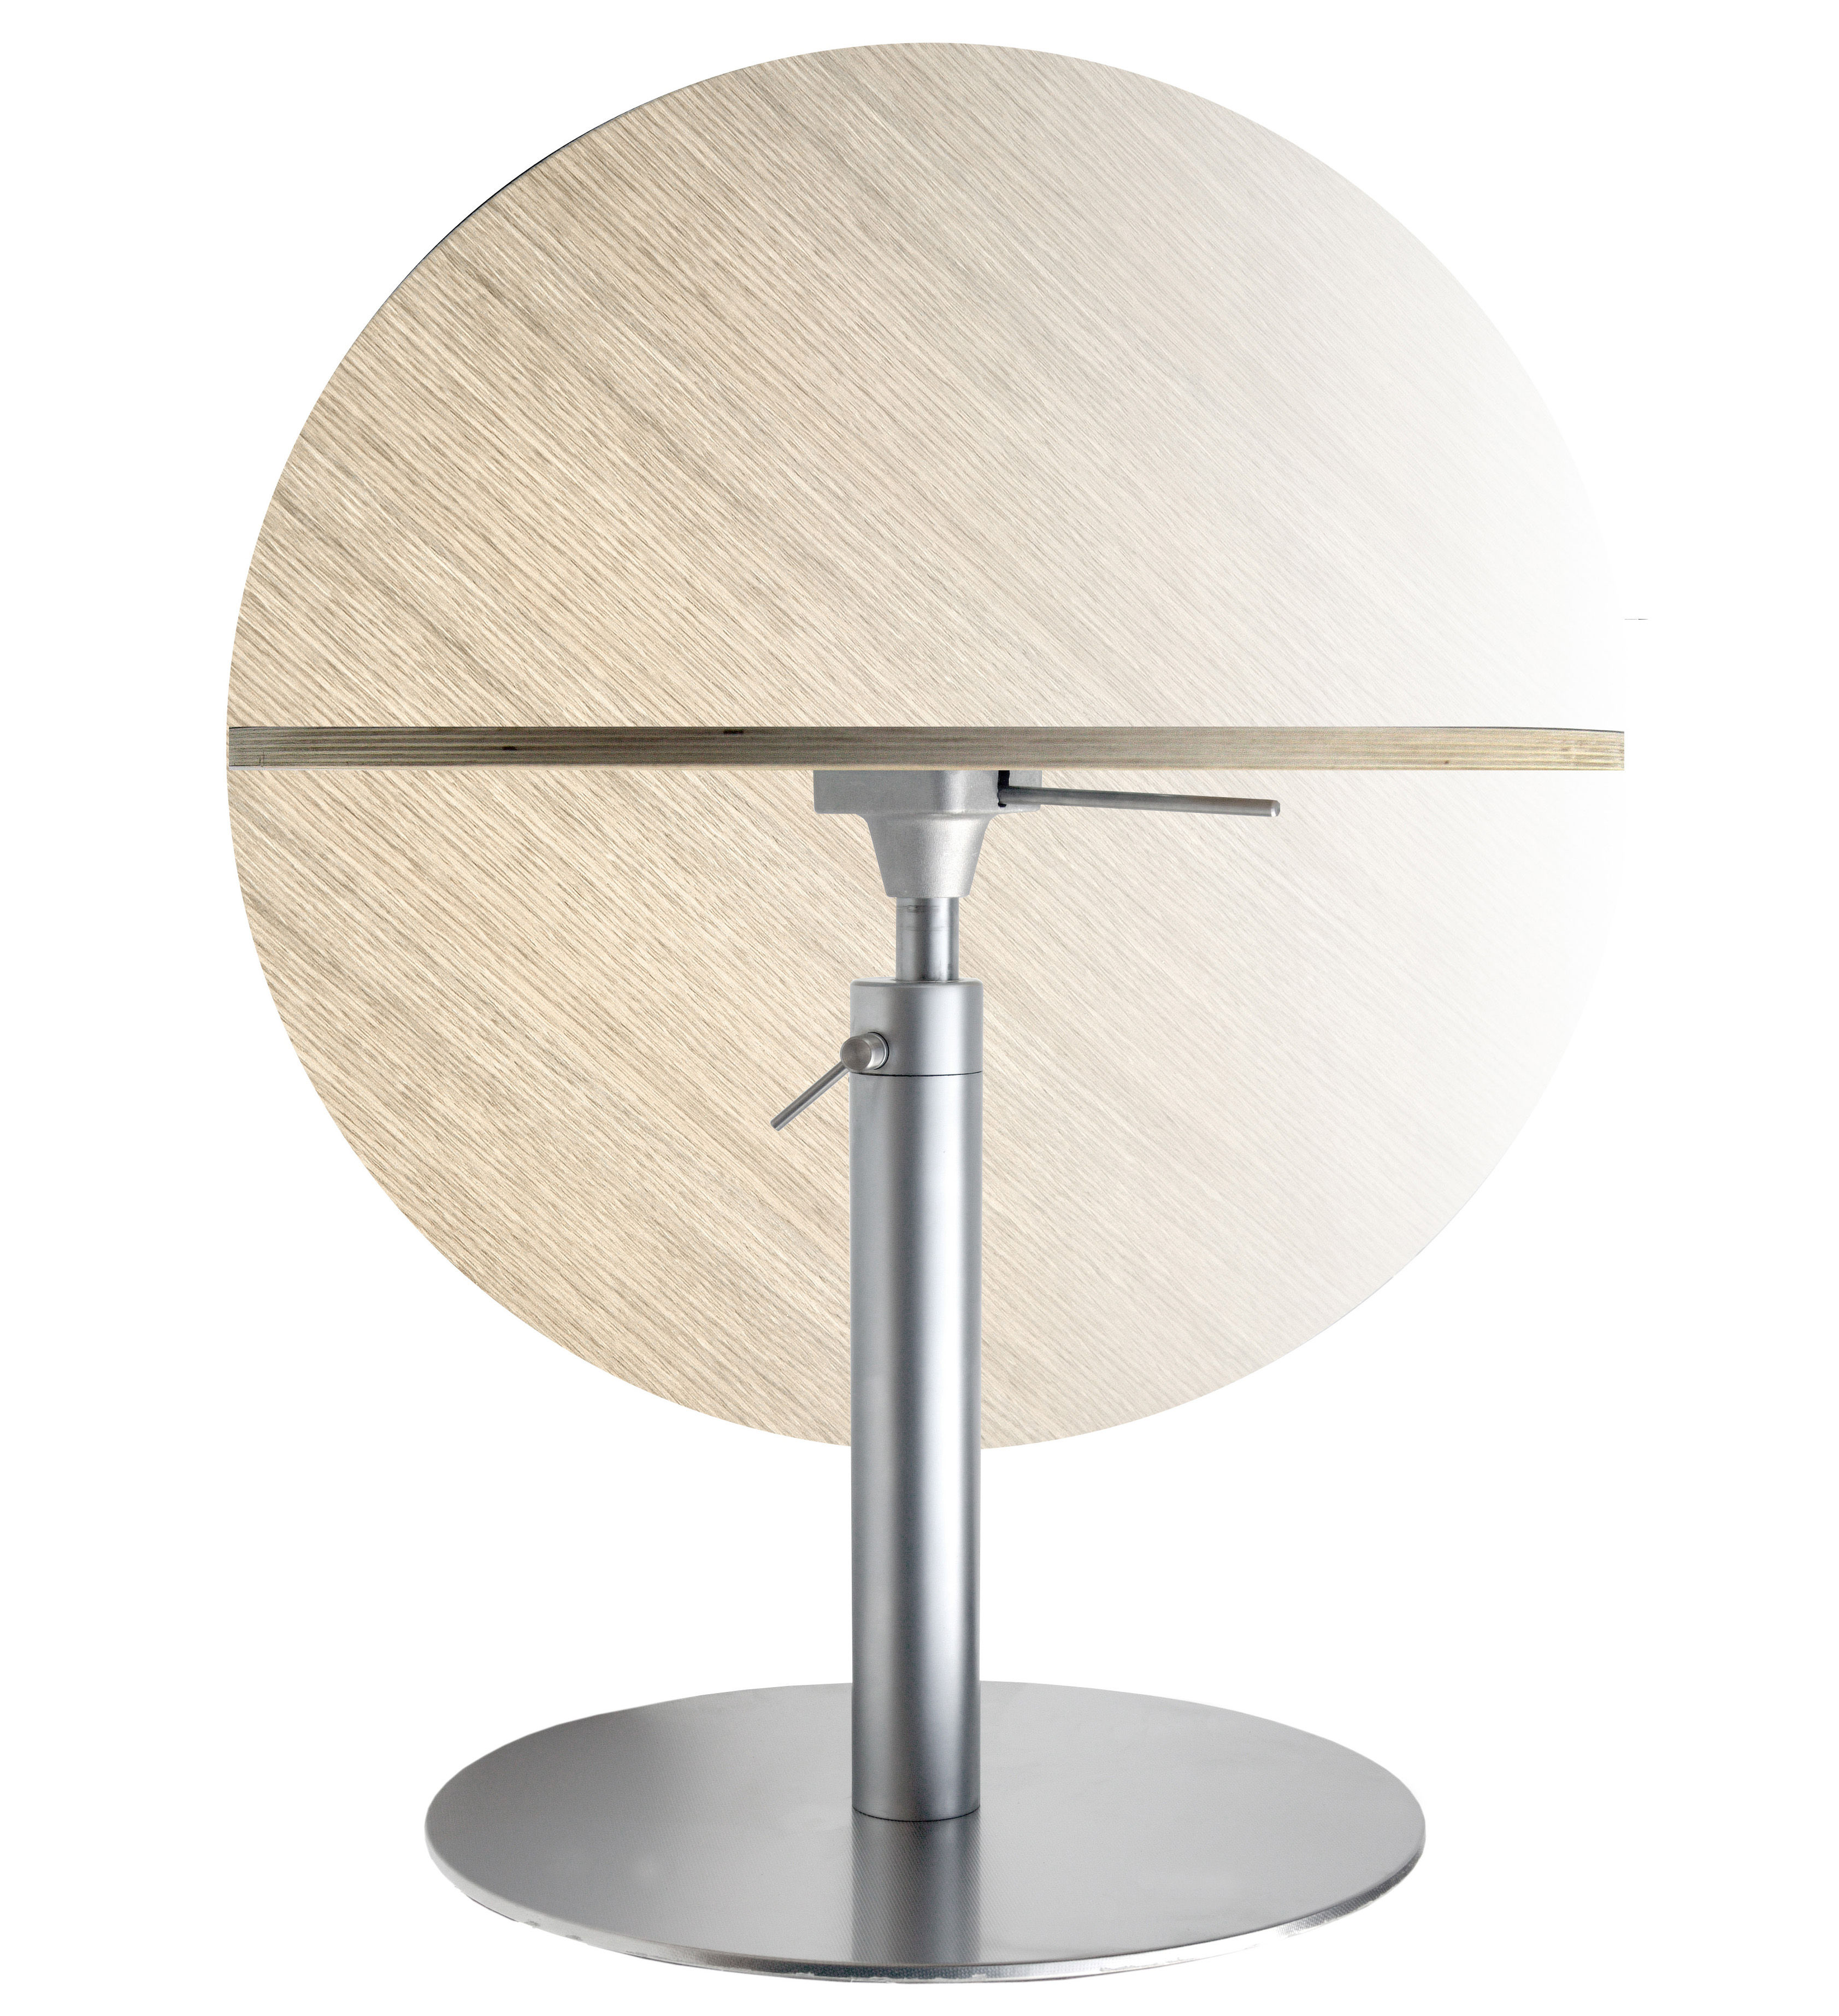 table hauteur rglable rondo 90 cm chne blanchi lapalma made in design - Table Basse Hauteur Reglable